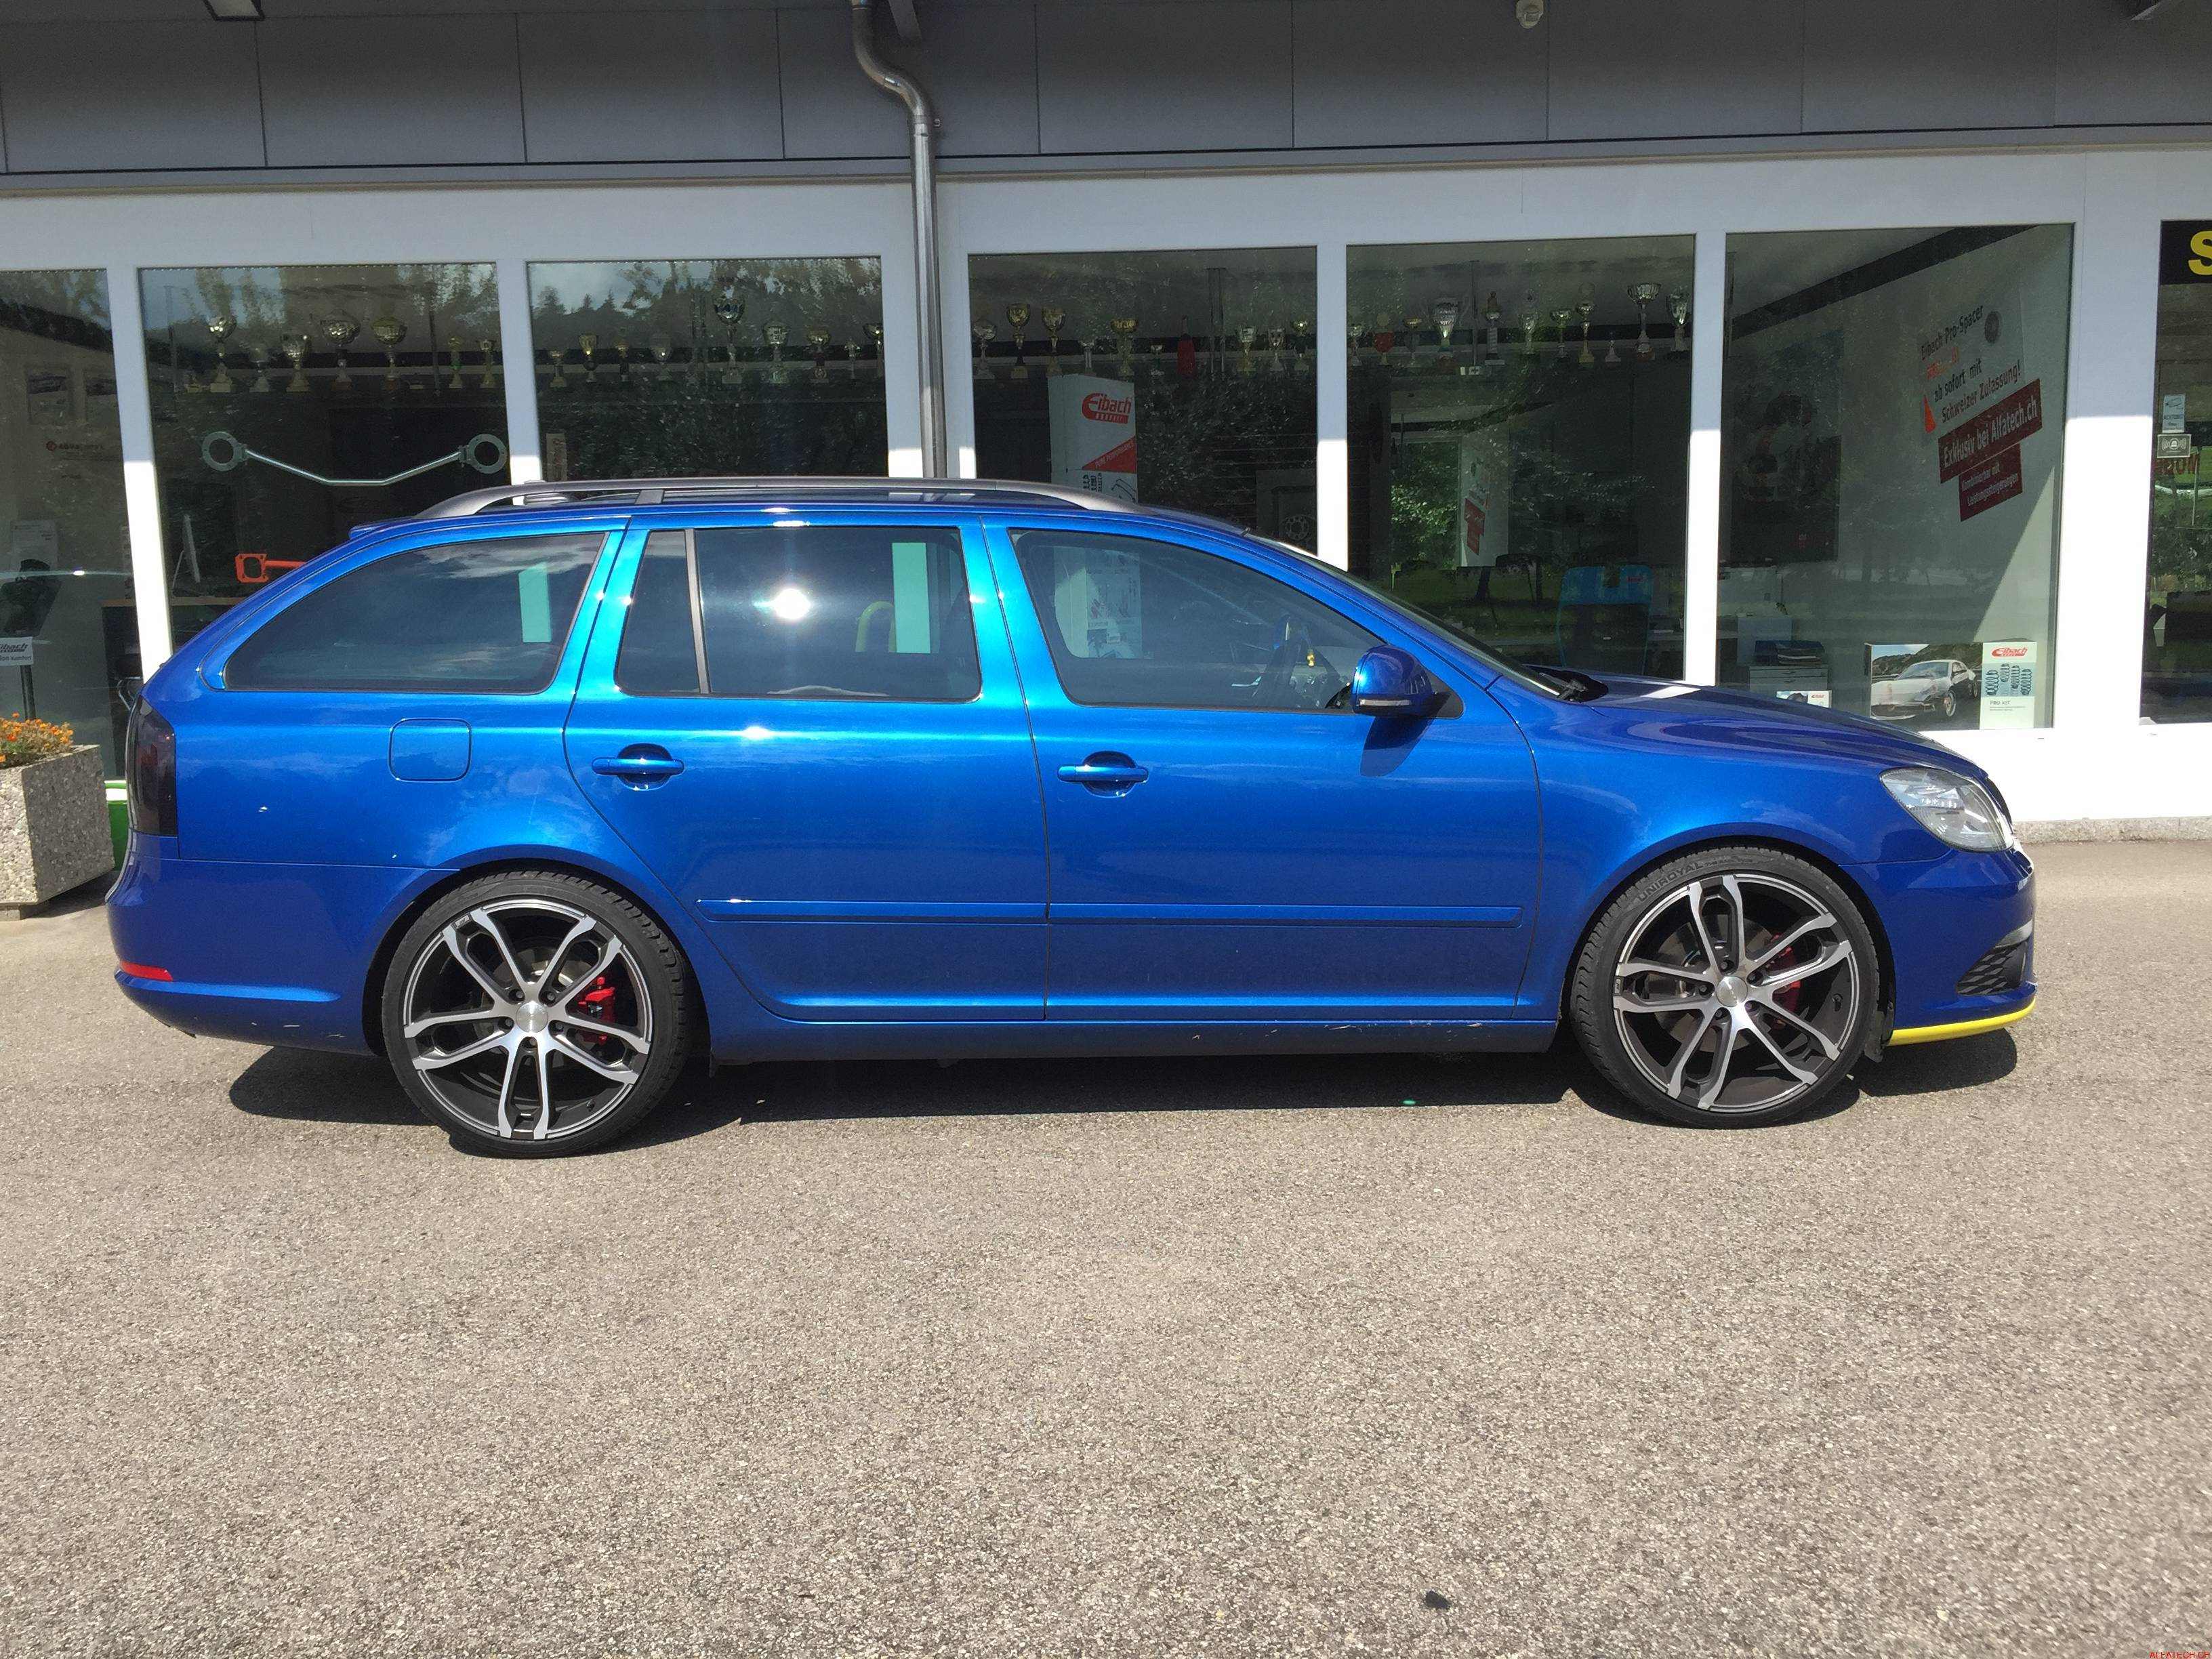 Skoda Octavia Combi (1Z5) 2.0 RS (200 PS)